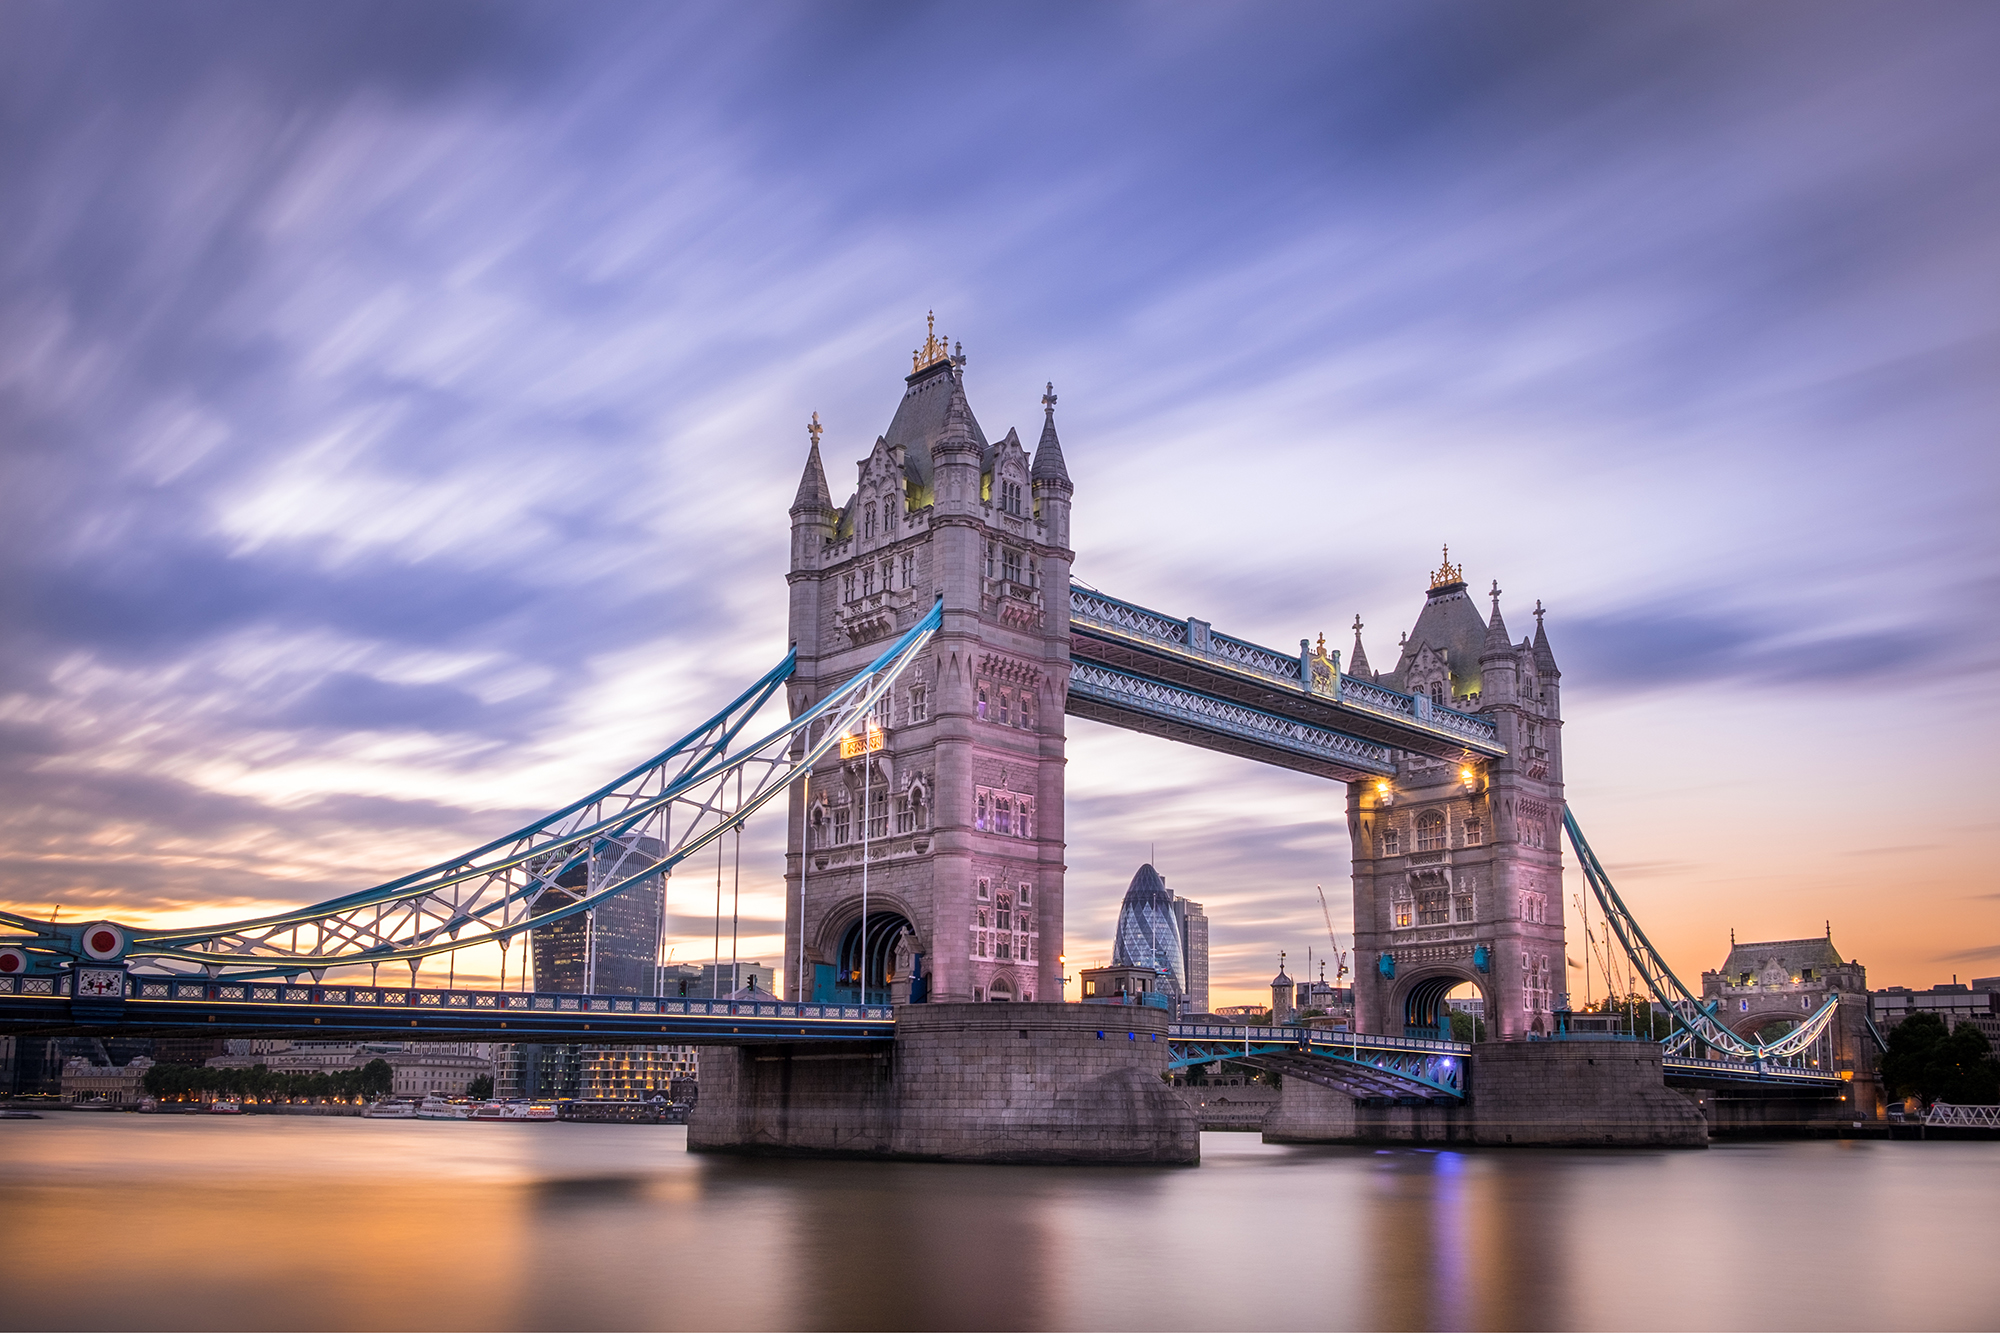 Cityscape long exposure photo of Tower Bridge, London by Trevor Sherwin